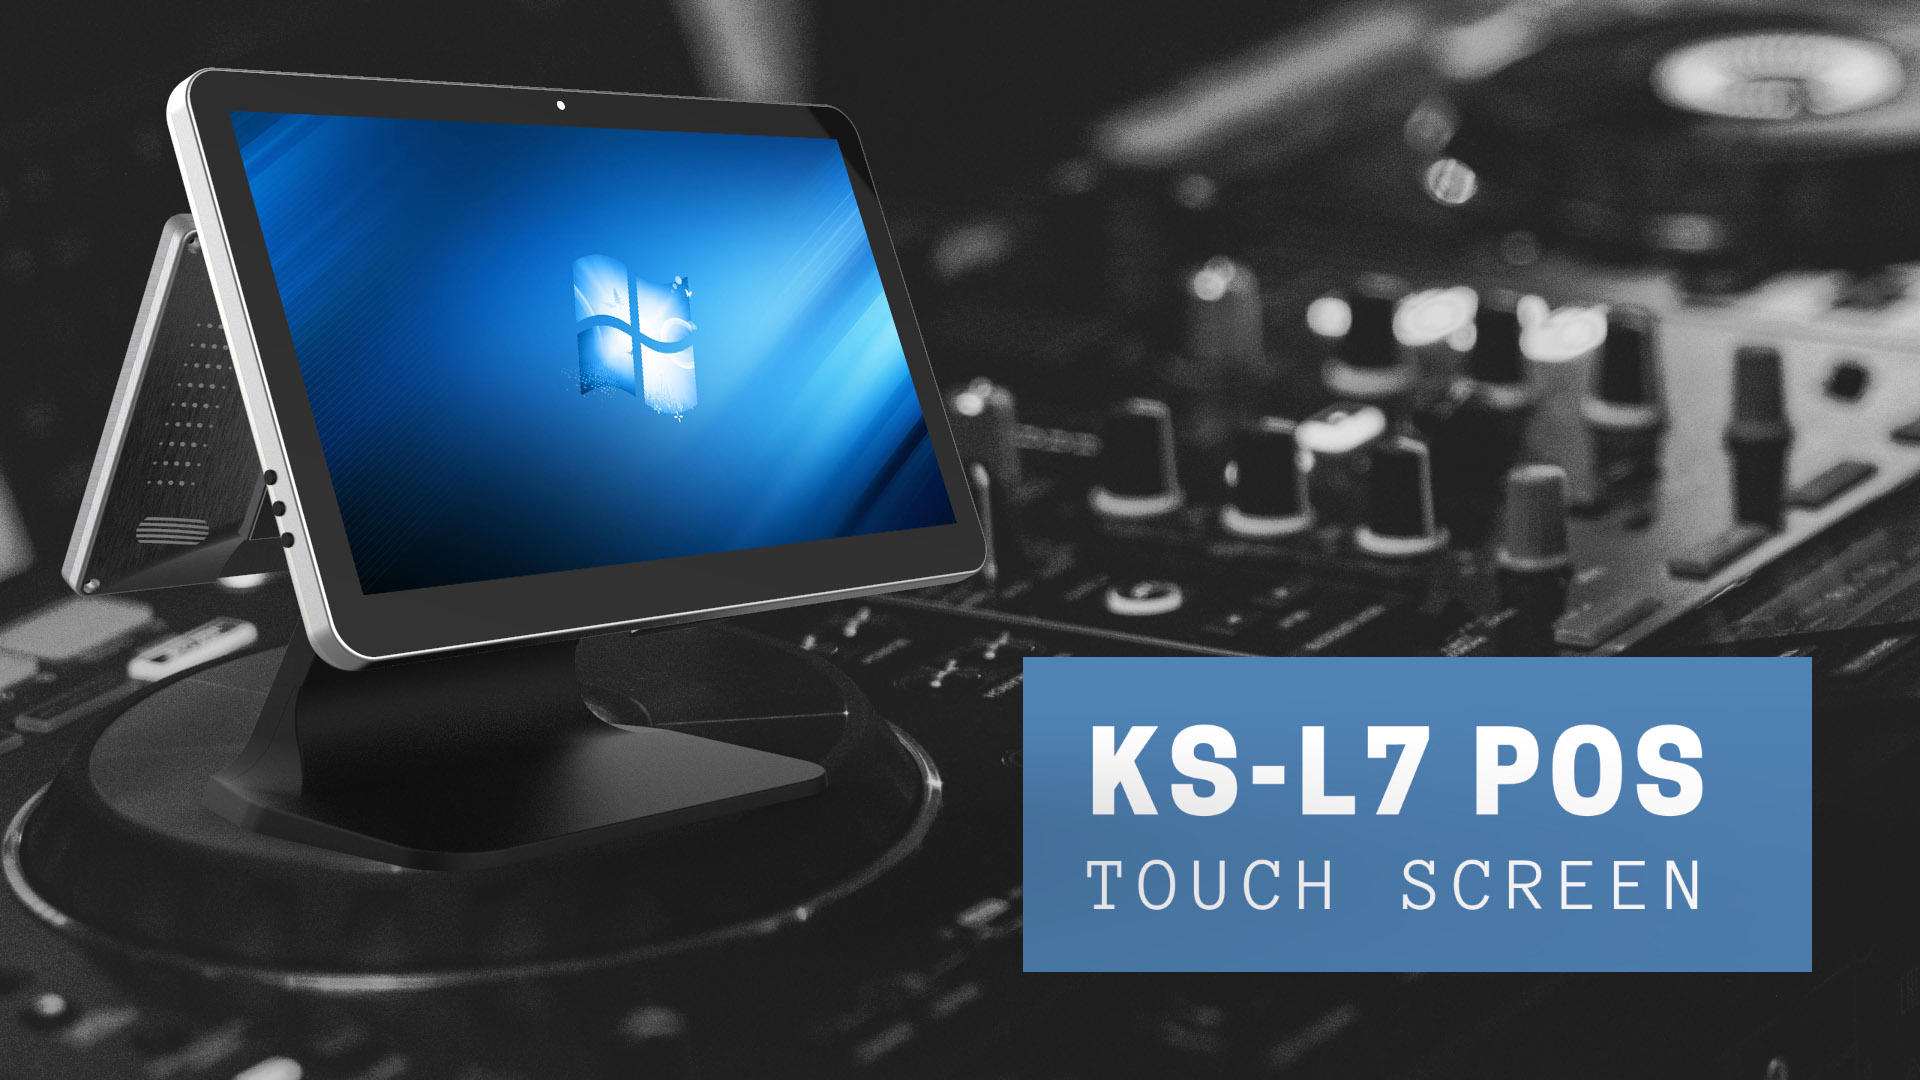 PTKSAI Touch Screen POS Terminal KS-L7 Design